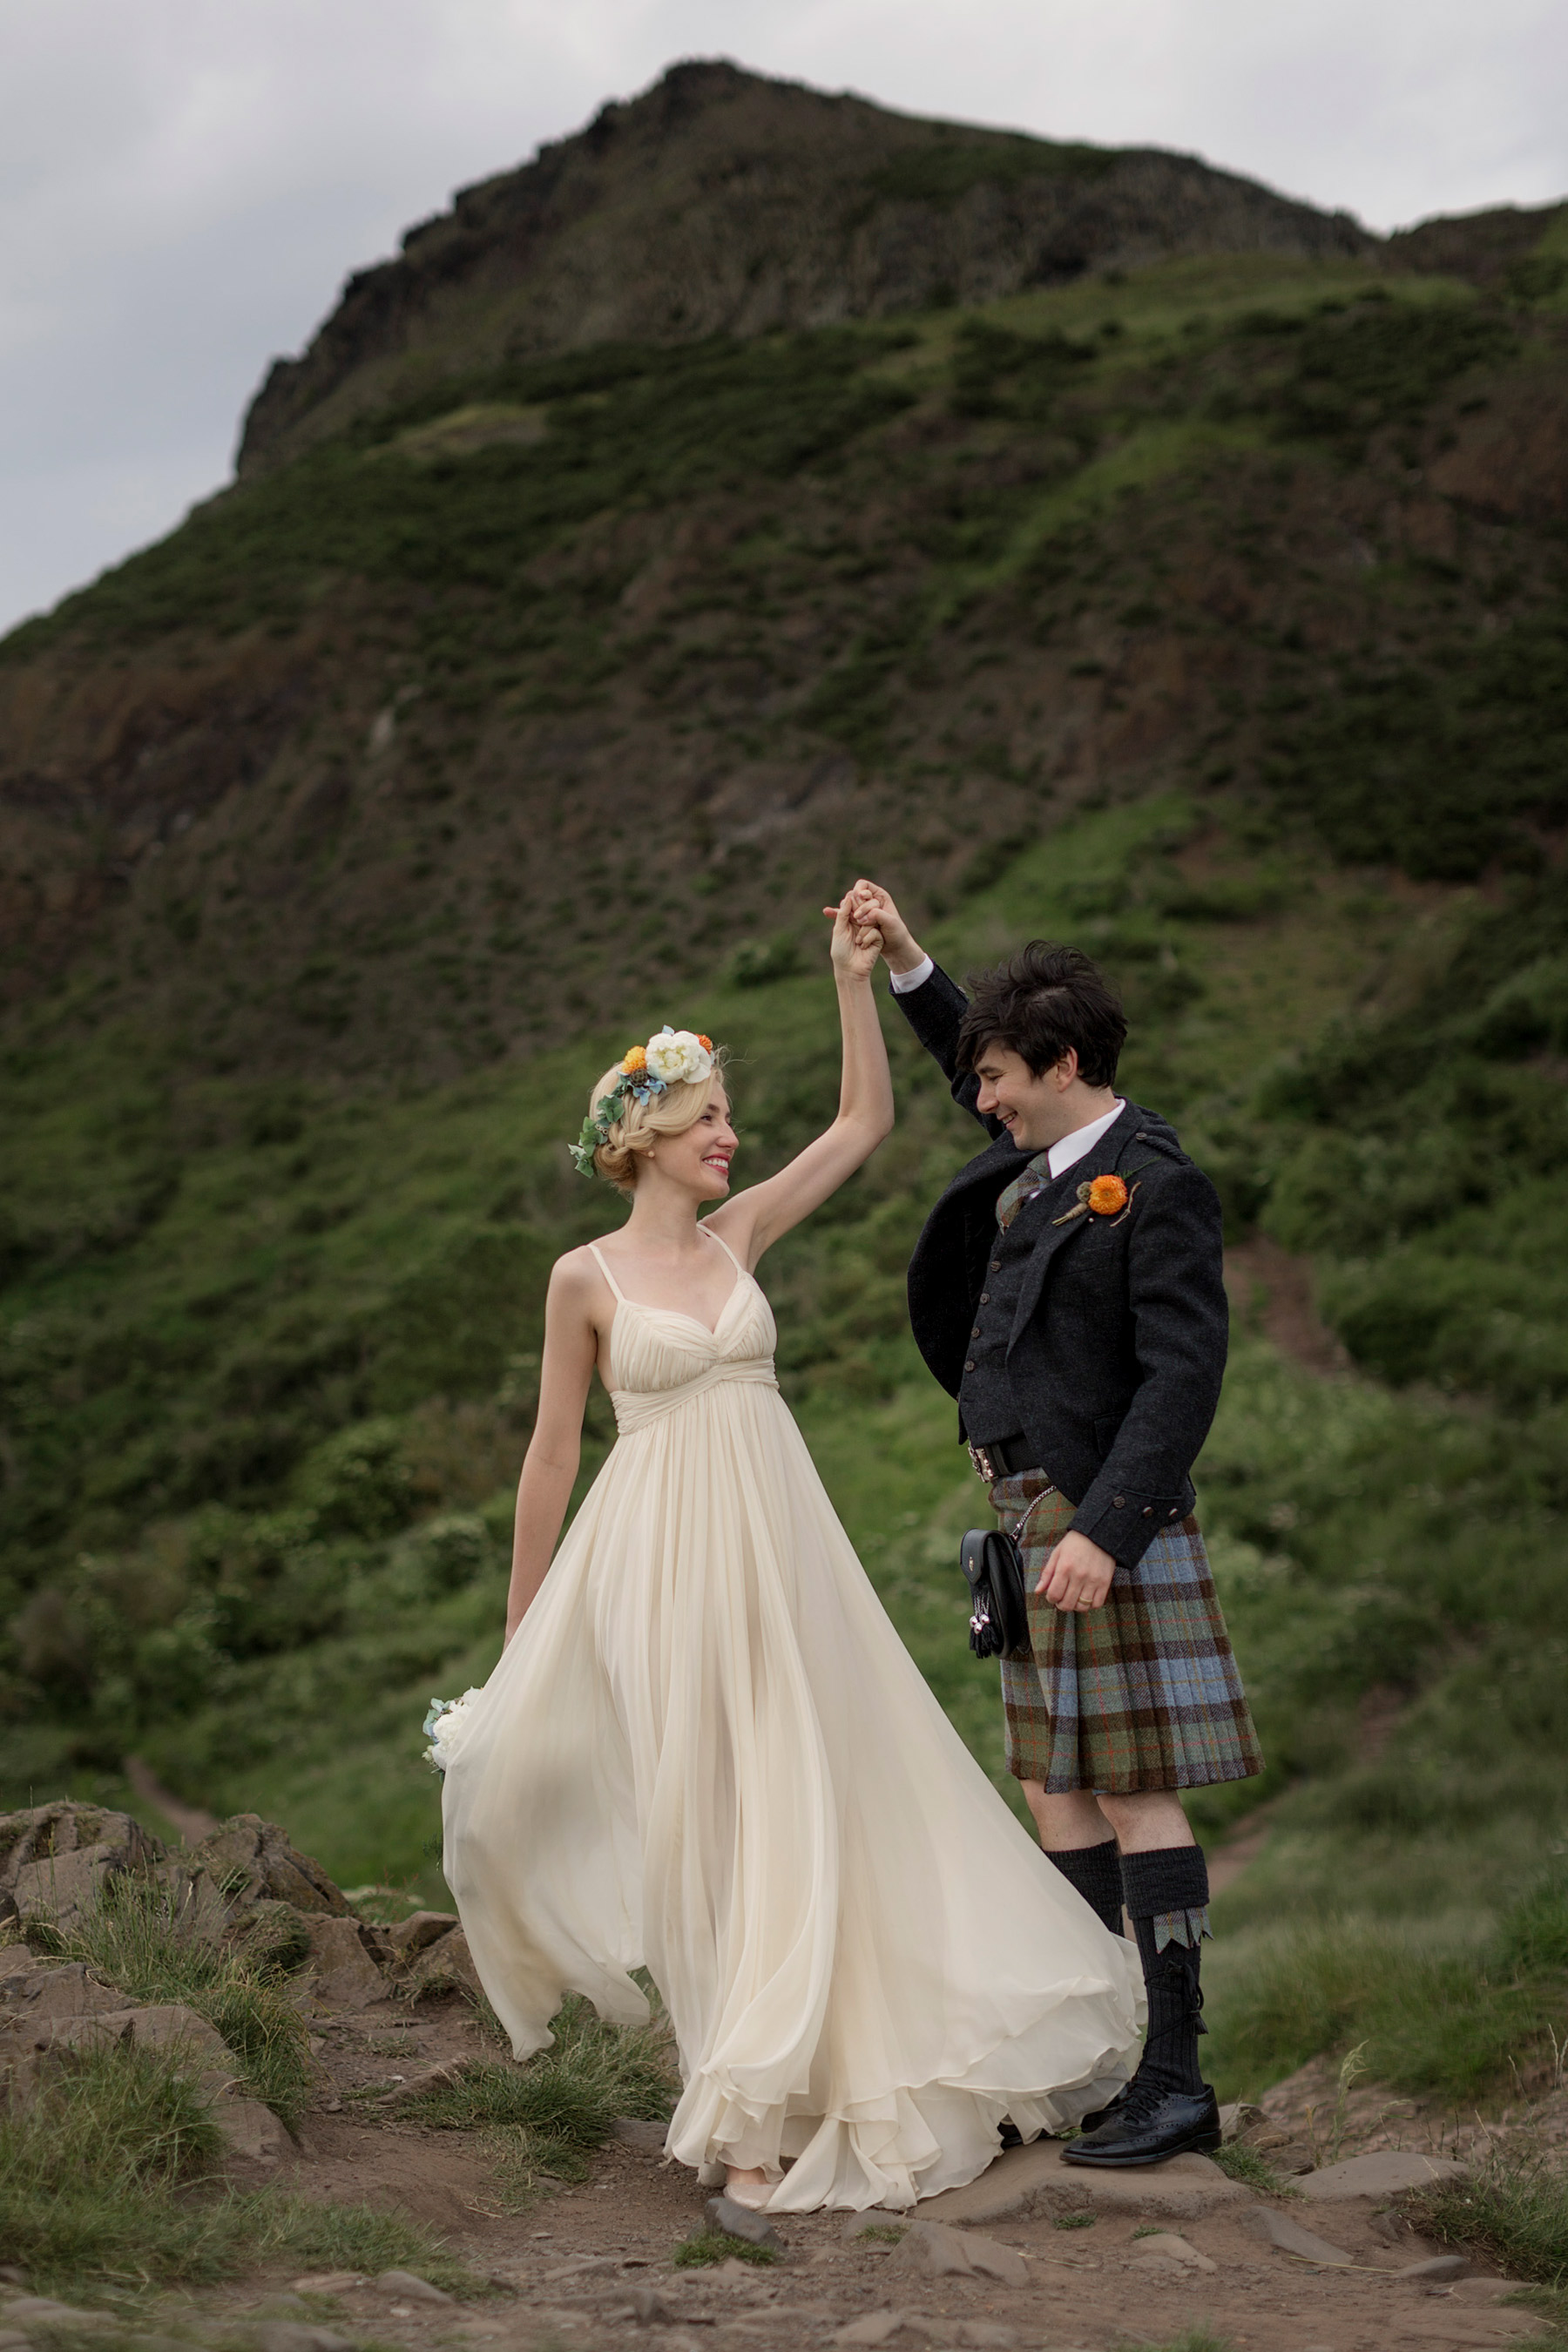 stuart mcleod and Jenni melear wedding in scotland